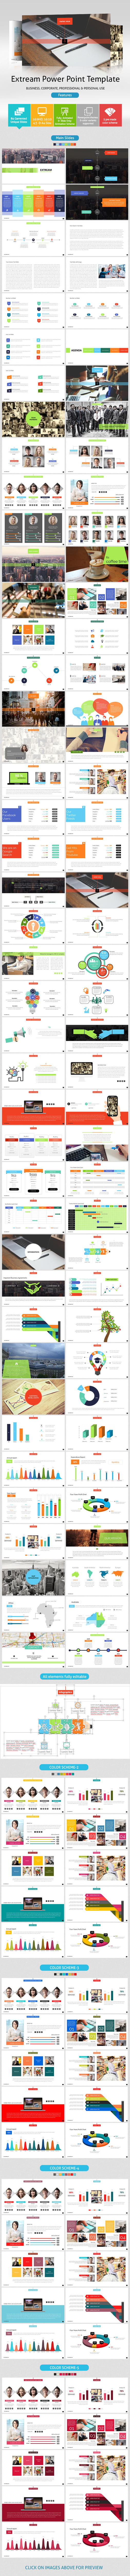 GraphicRiver Extream Power Point Presentation 10865411